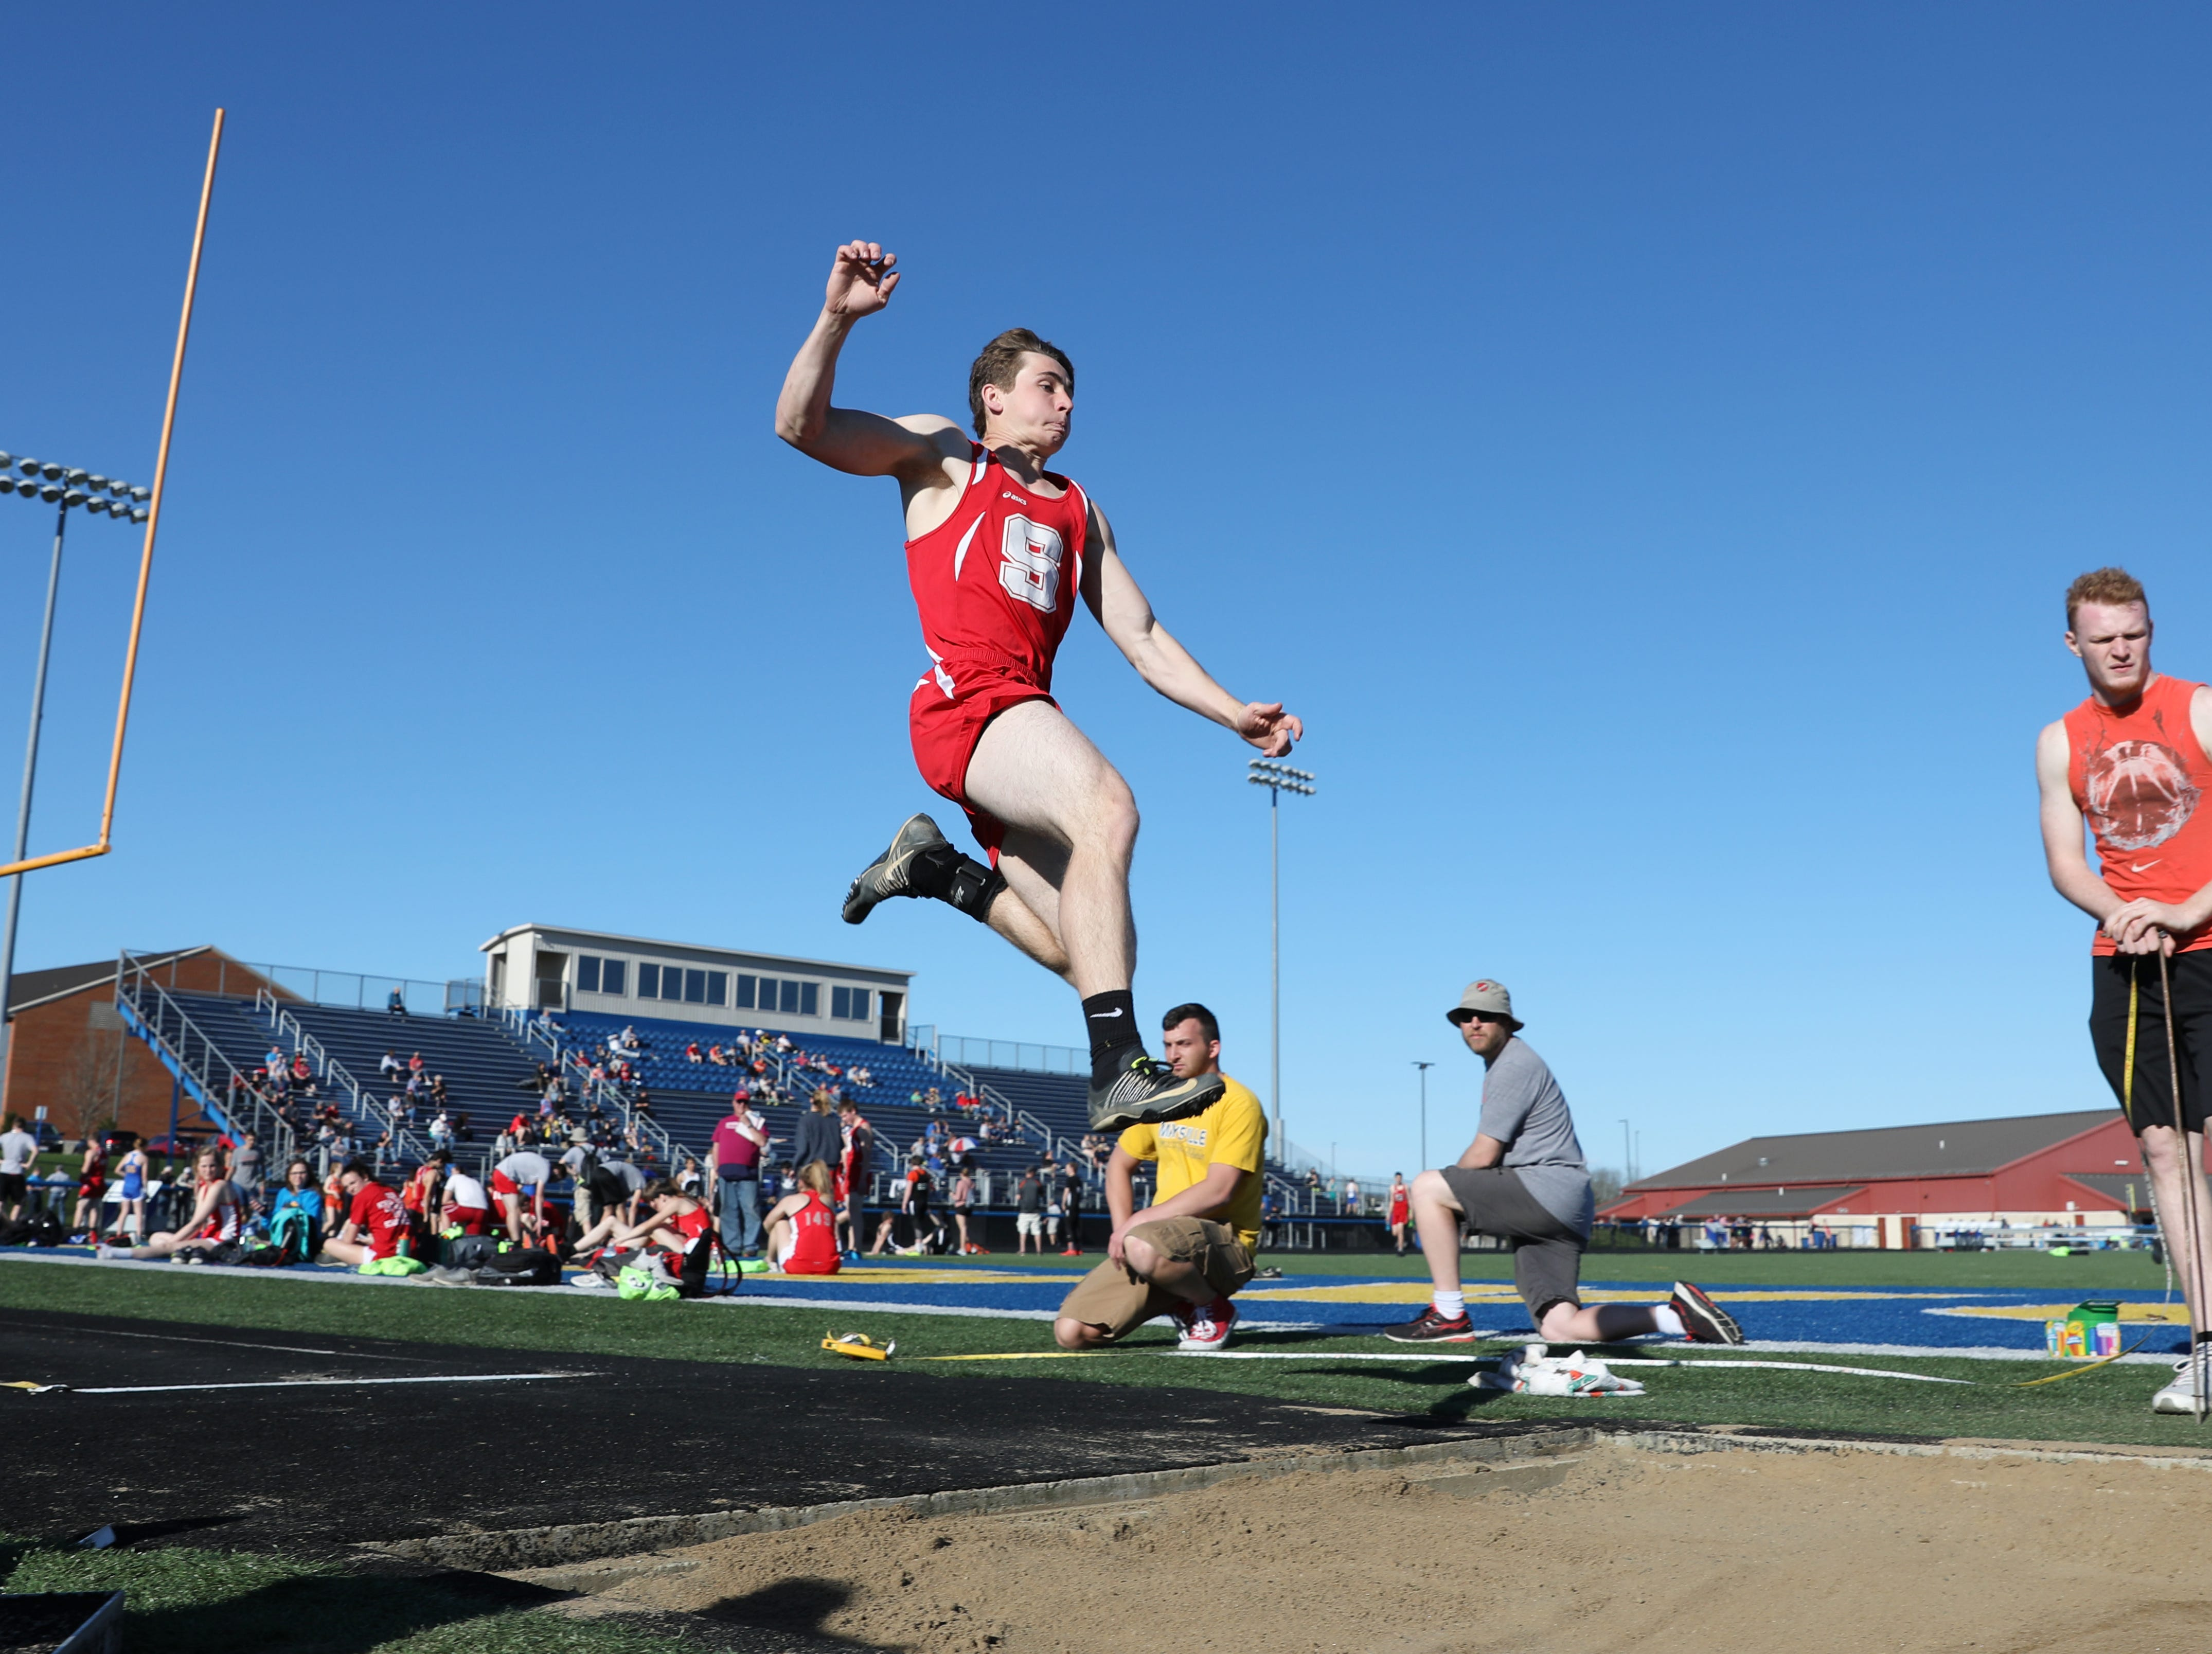 Sheridan's Kyler Altier competes in the long jump during Tuesday's tri-meet between Sheridan, New Lexington and host Maysville.